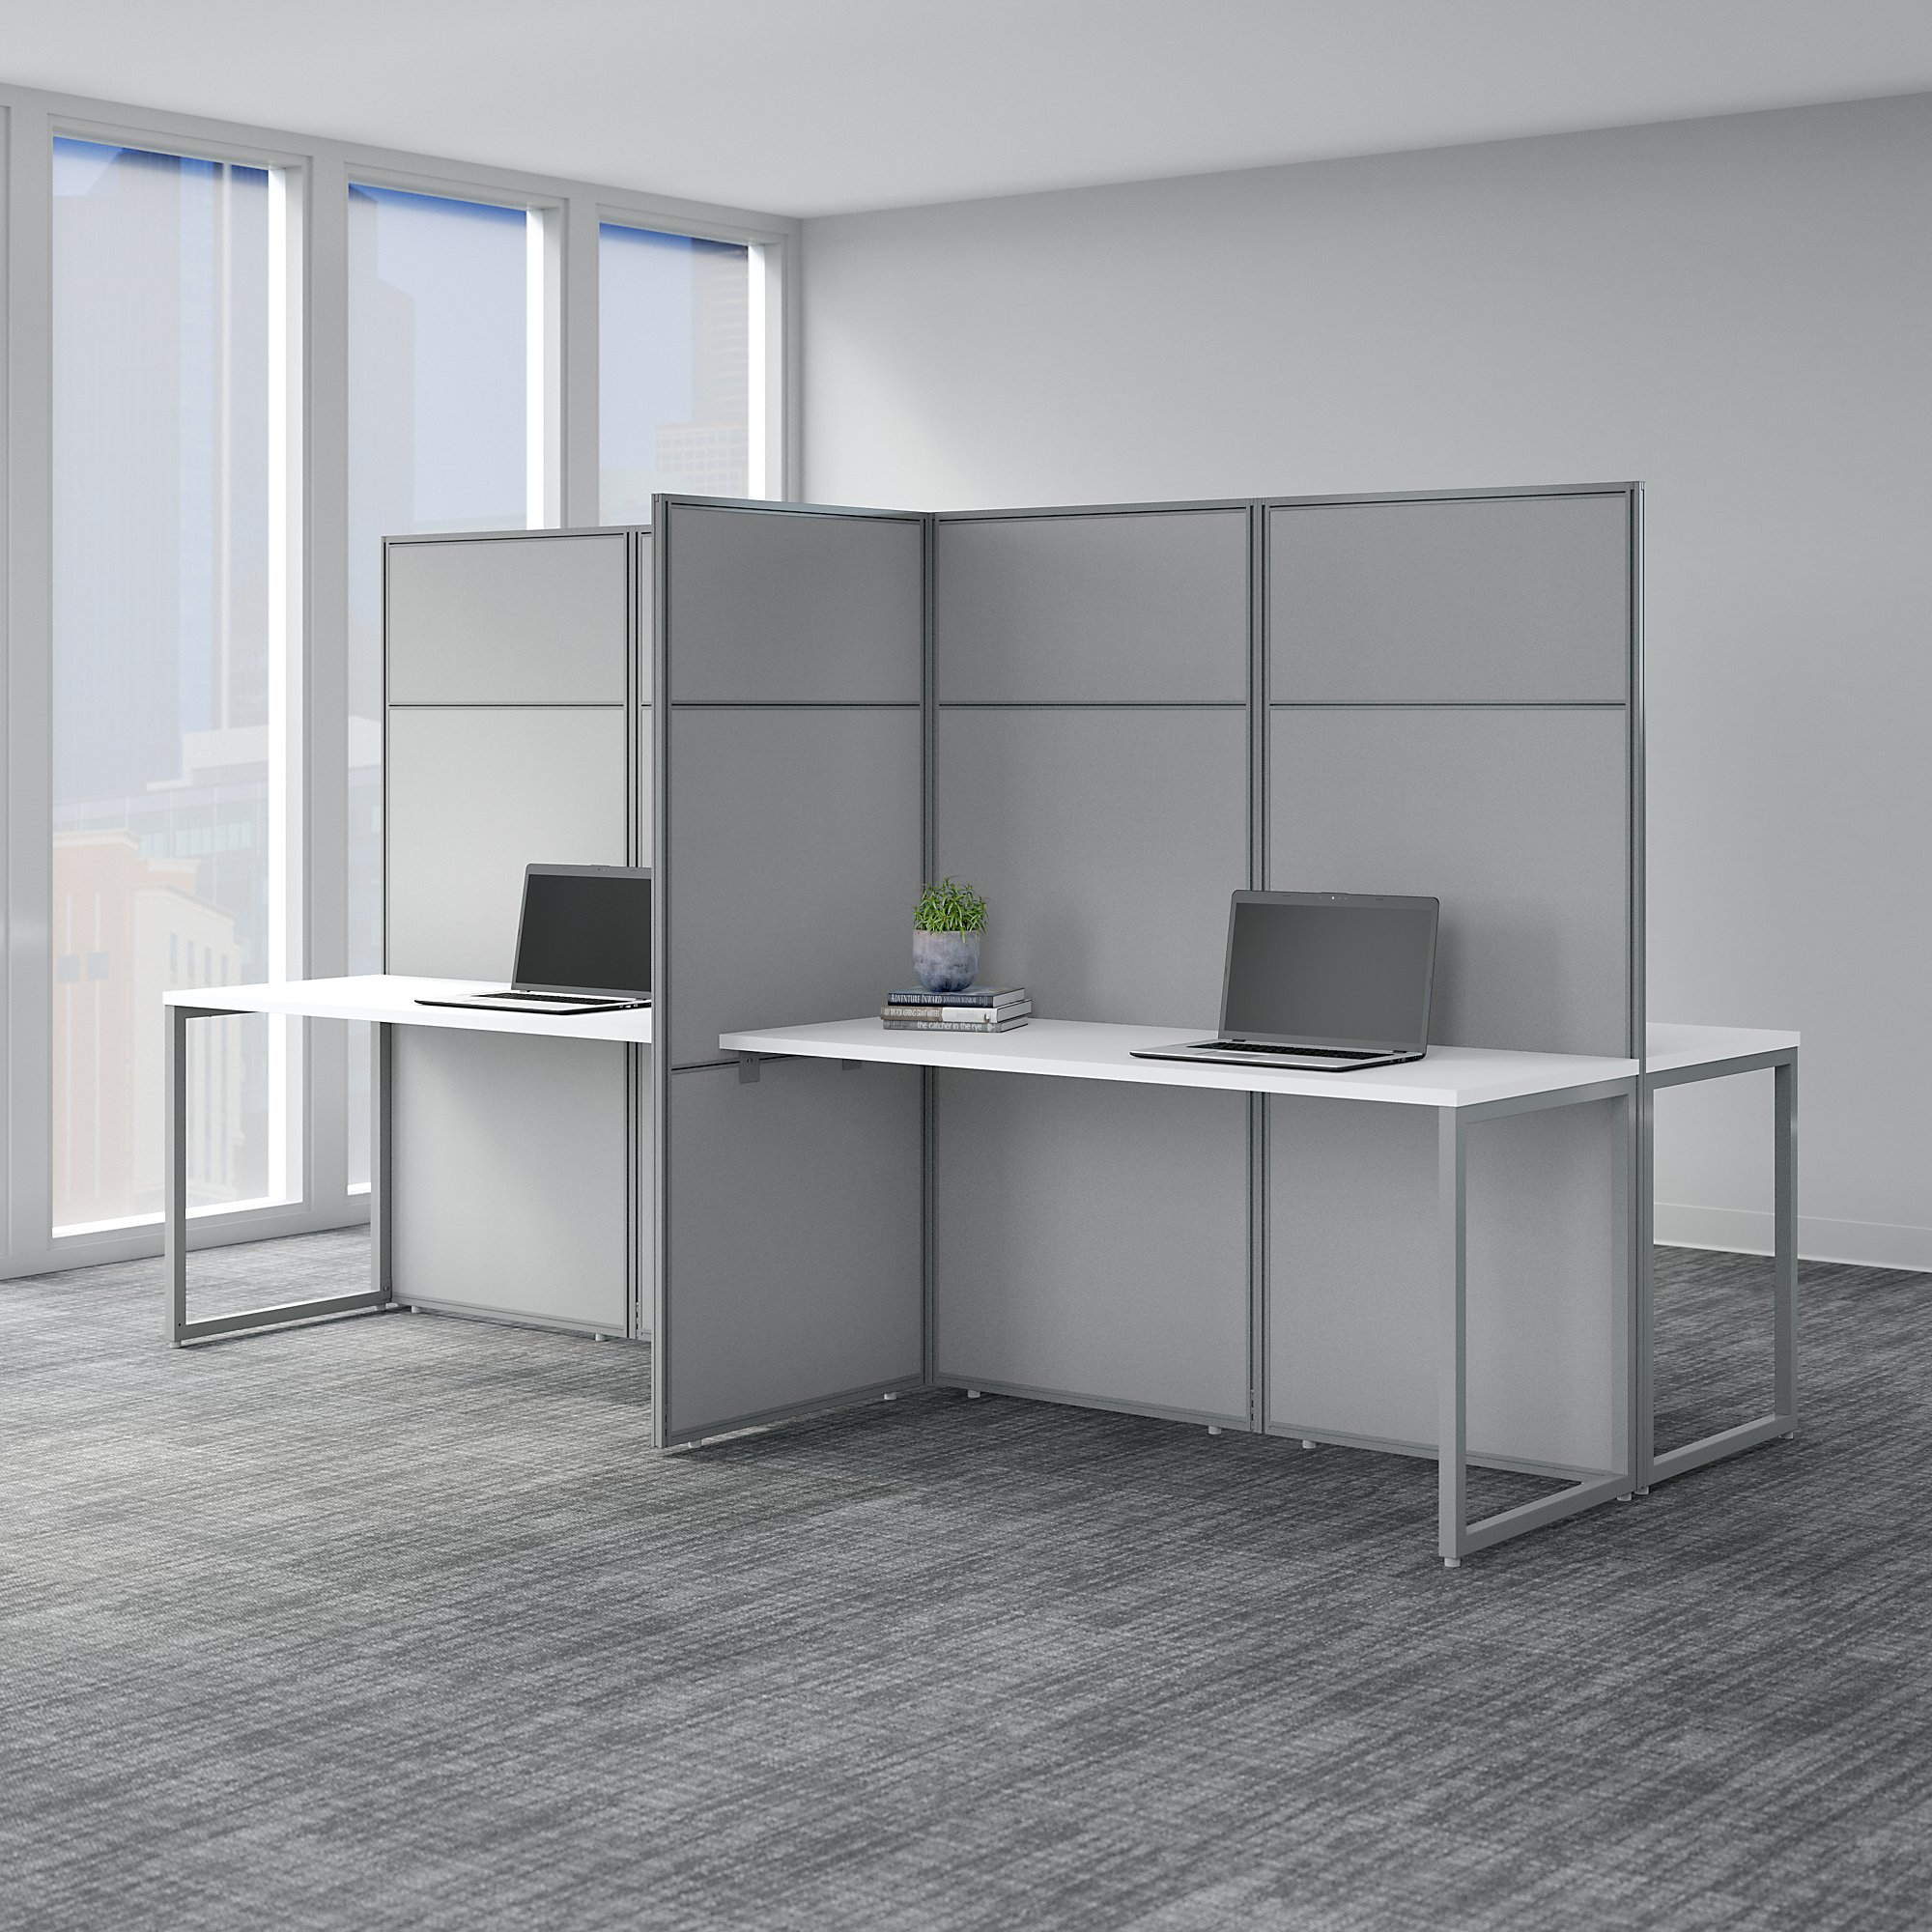 easy office 4 person privacy workstation in pure white